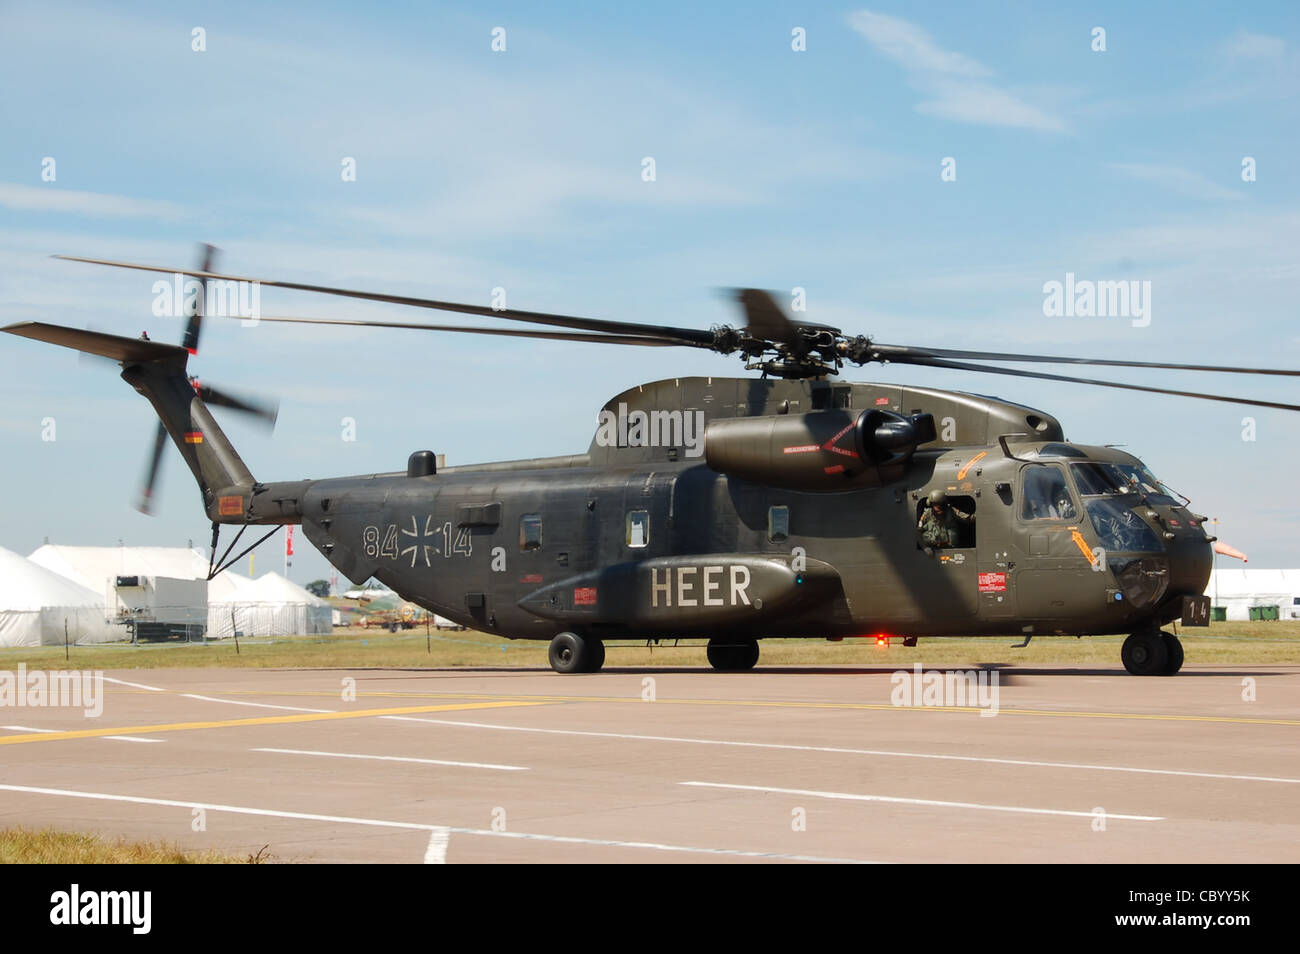 German Army Sikorsky CH-53G Stallion (marked 84-14) taxis to the runway on the 2010 Air Tattoo departures day, at - Stock Image